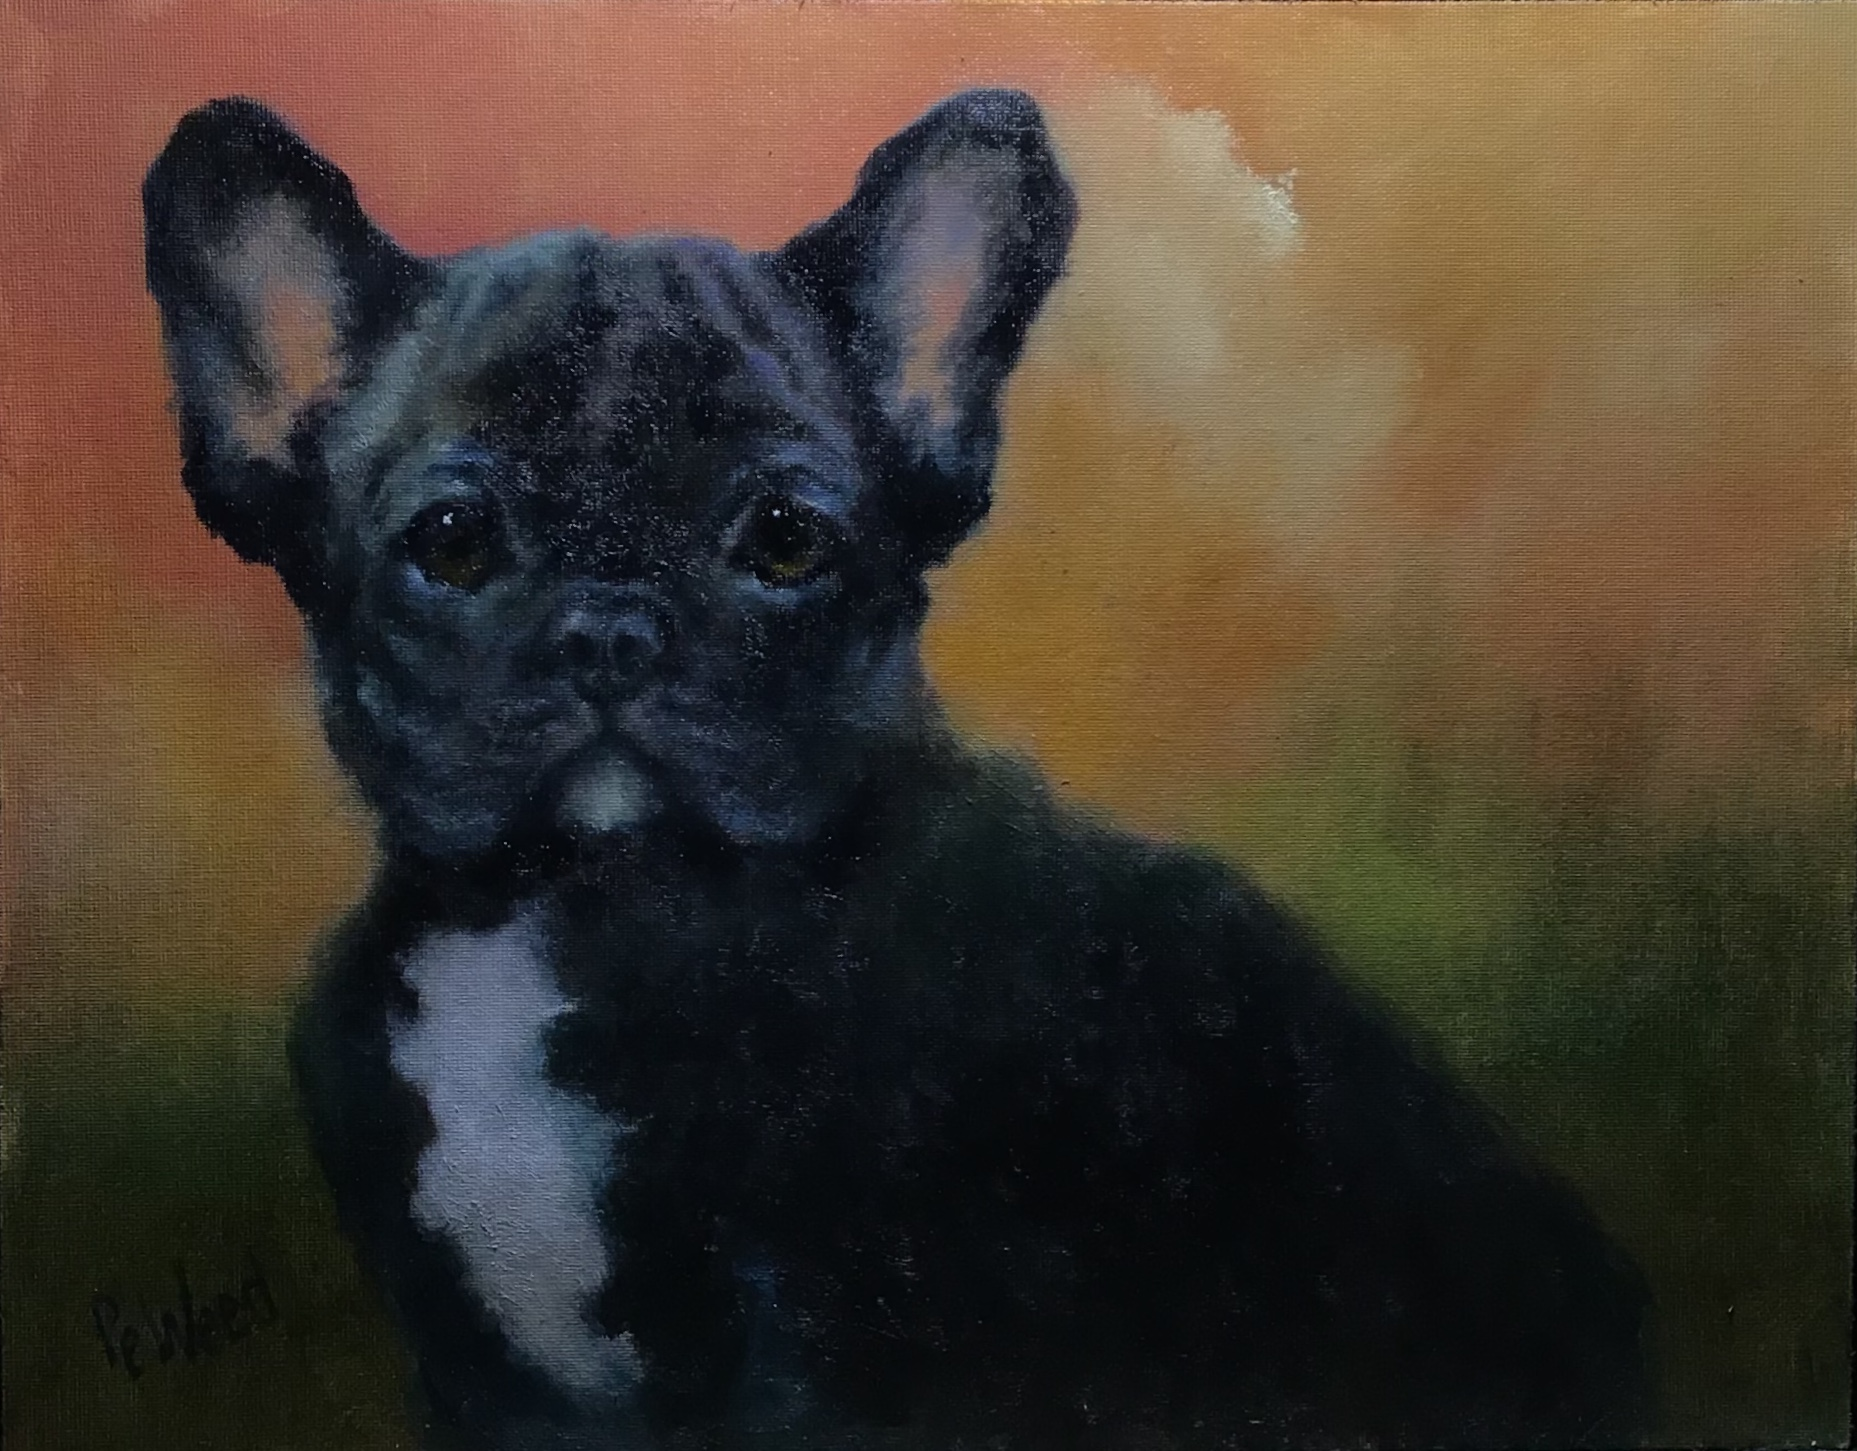 Weed, Peggy-The Black Frenchie